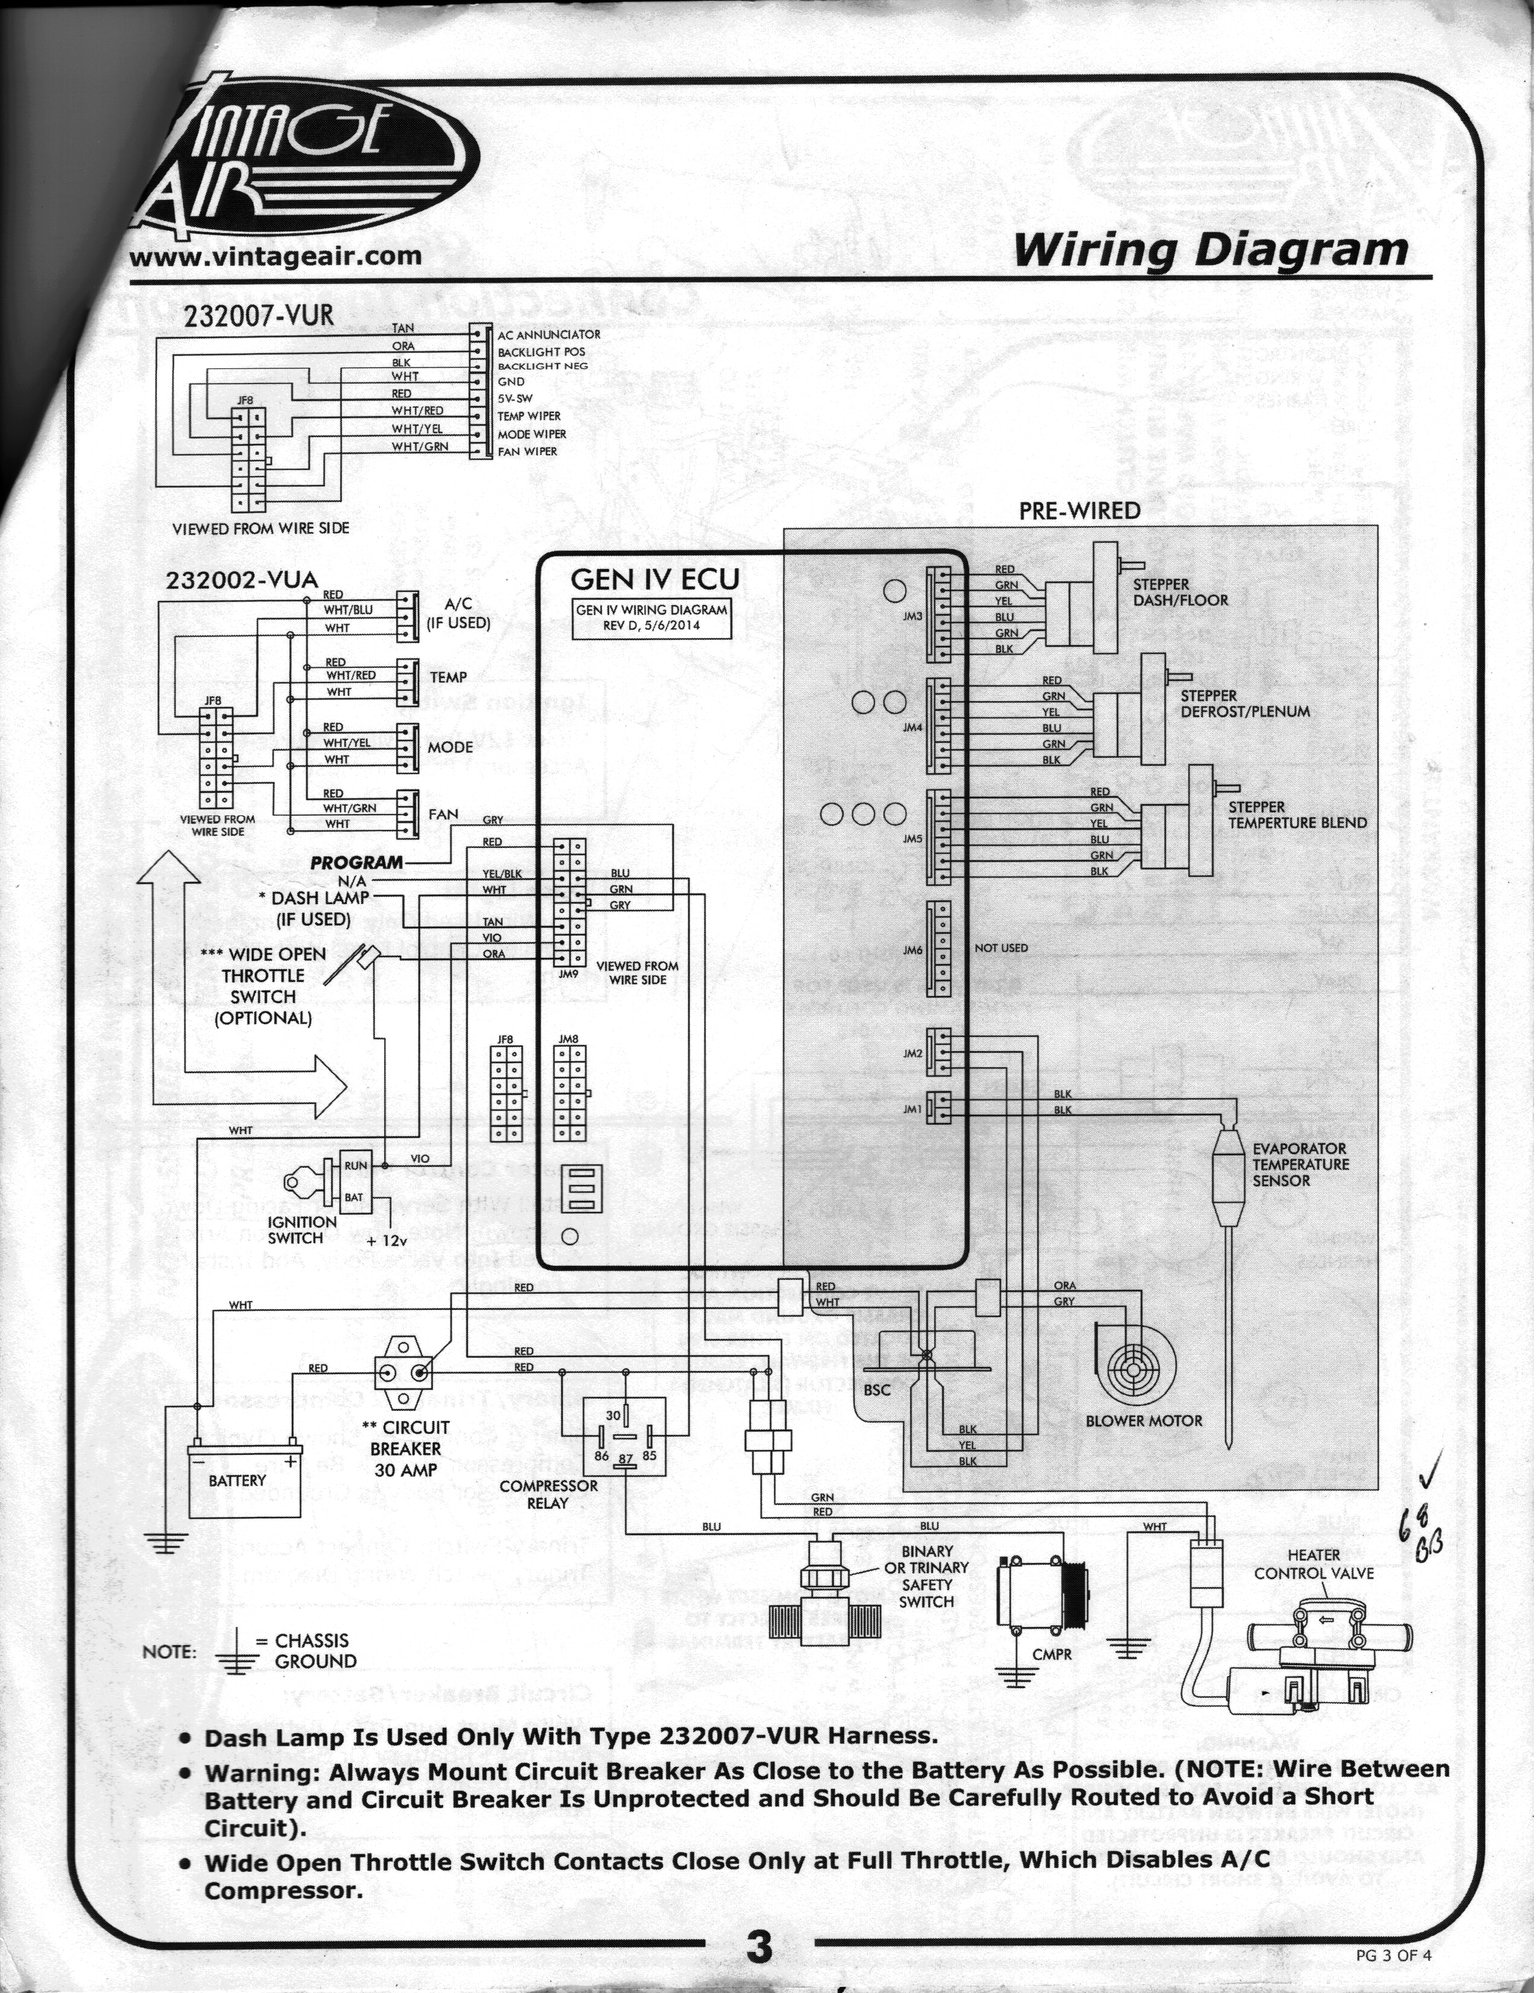 Vintage Air Gen 2 Wiring Diagram from cimg0.ibsrv.net